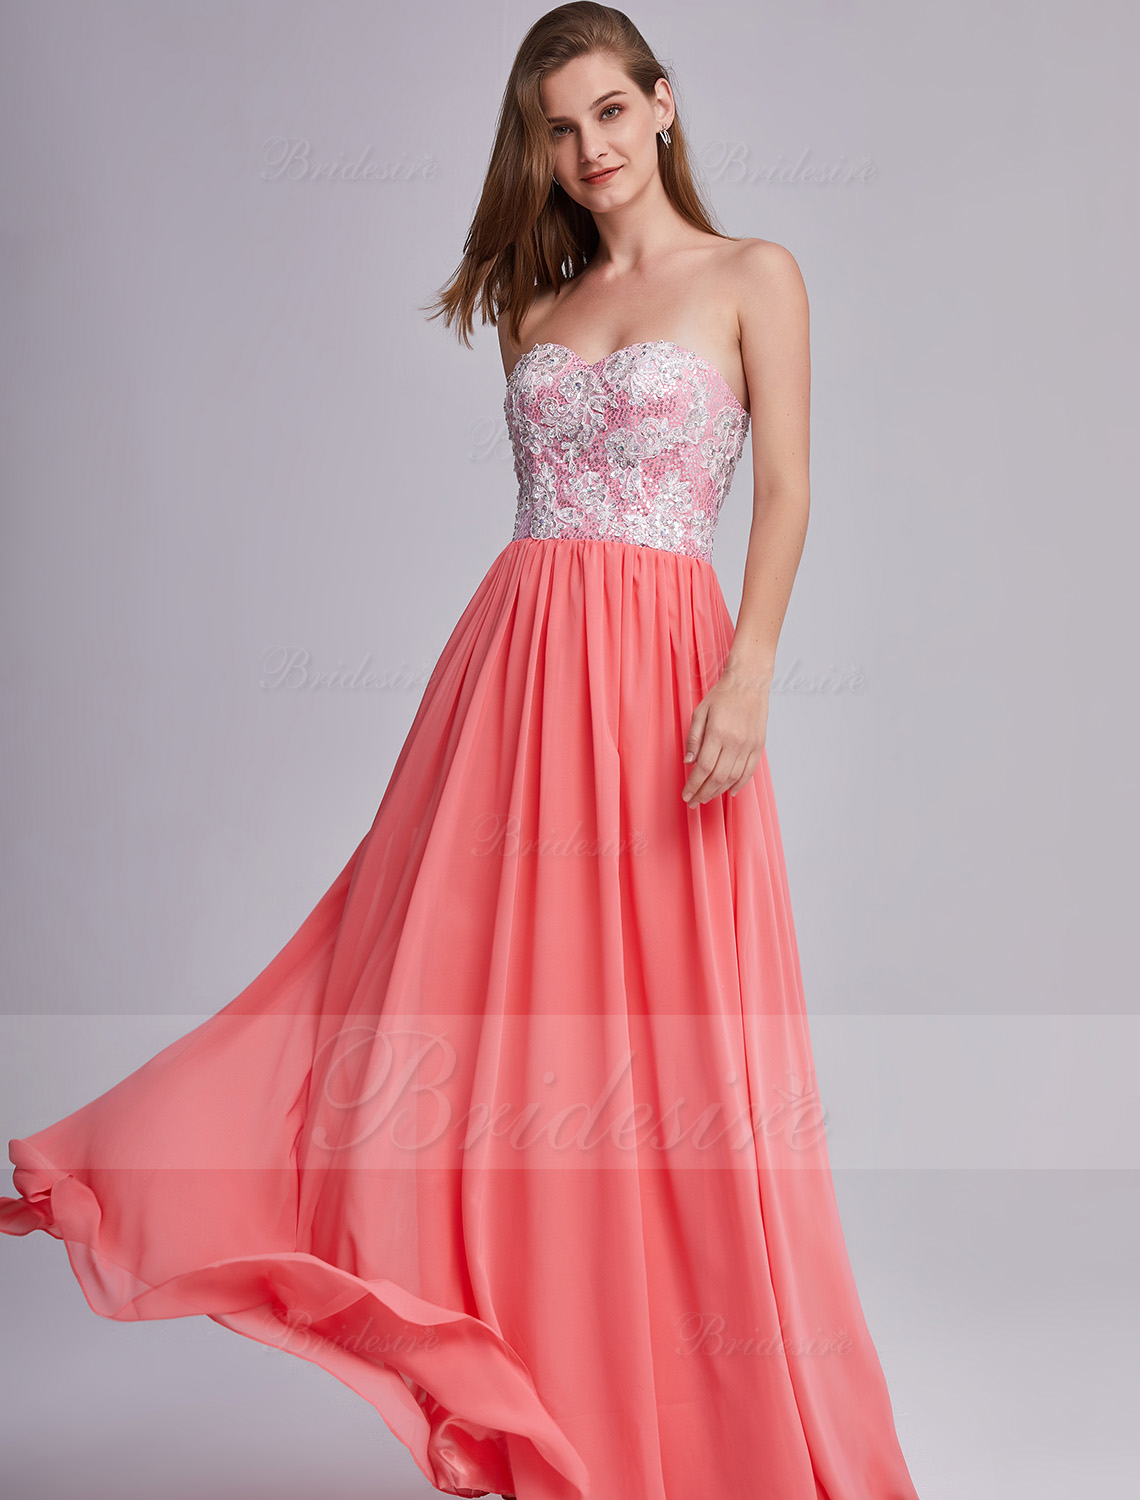 A-line Sweetheart Floor Lenght Lace Chiffon Evening Dress